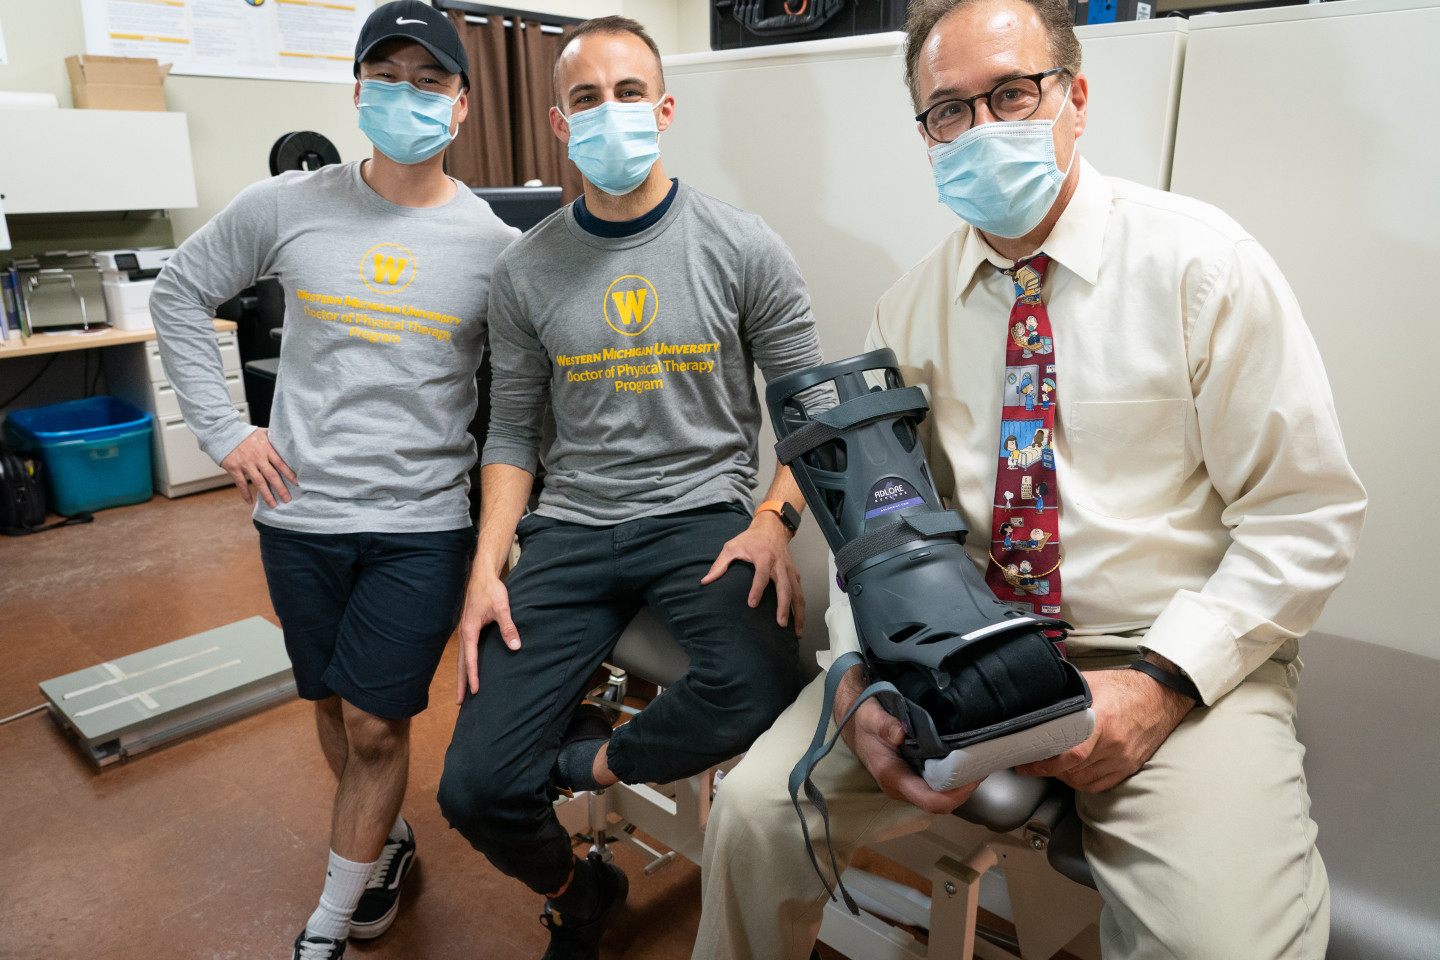 Pham Tram, Sean Clark and Dr. Daryl Lawson pose for a photo with the SenLore boot prototype.